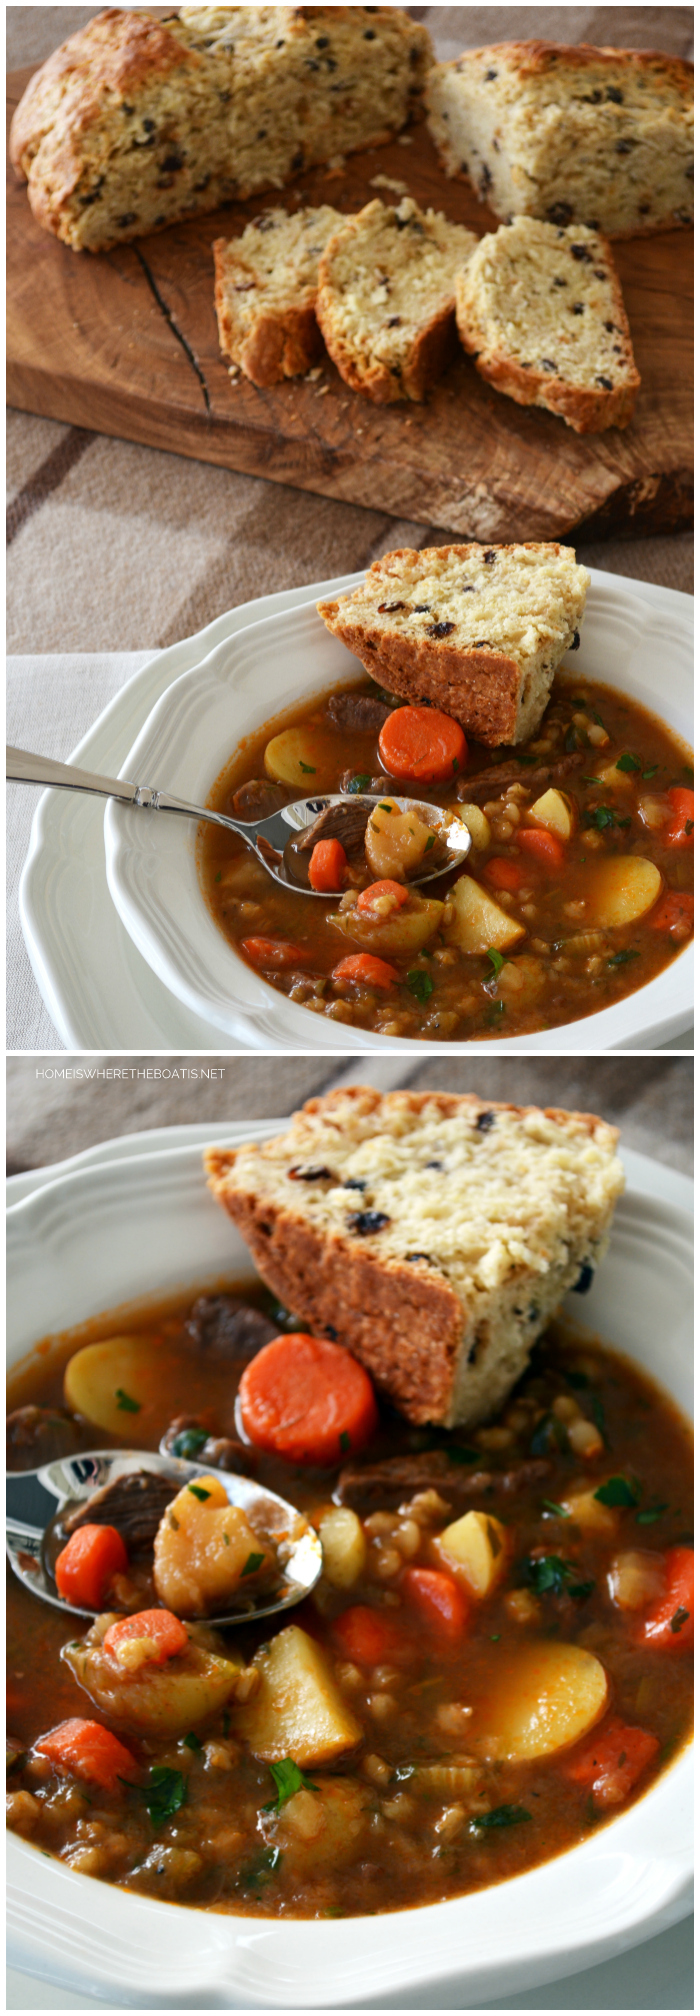 Irish Beef Stew with Irish Whiskey Soda Bread | ©homeiswheretheboatis.net #stpatricksday #recipe